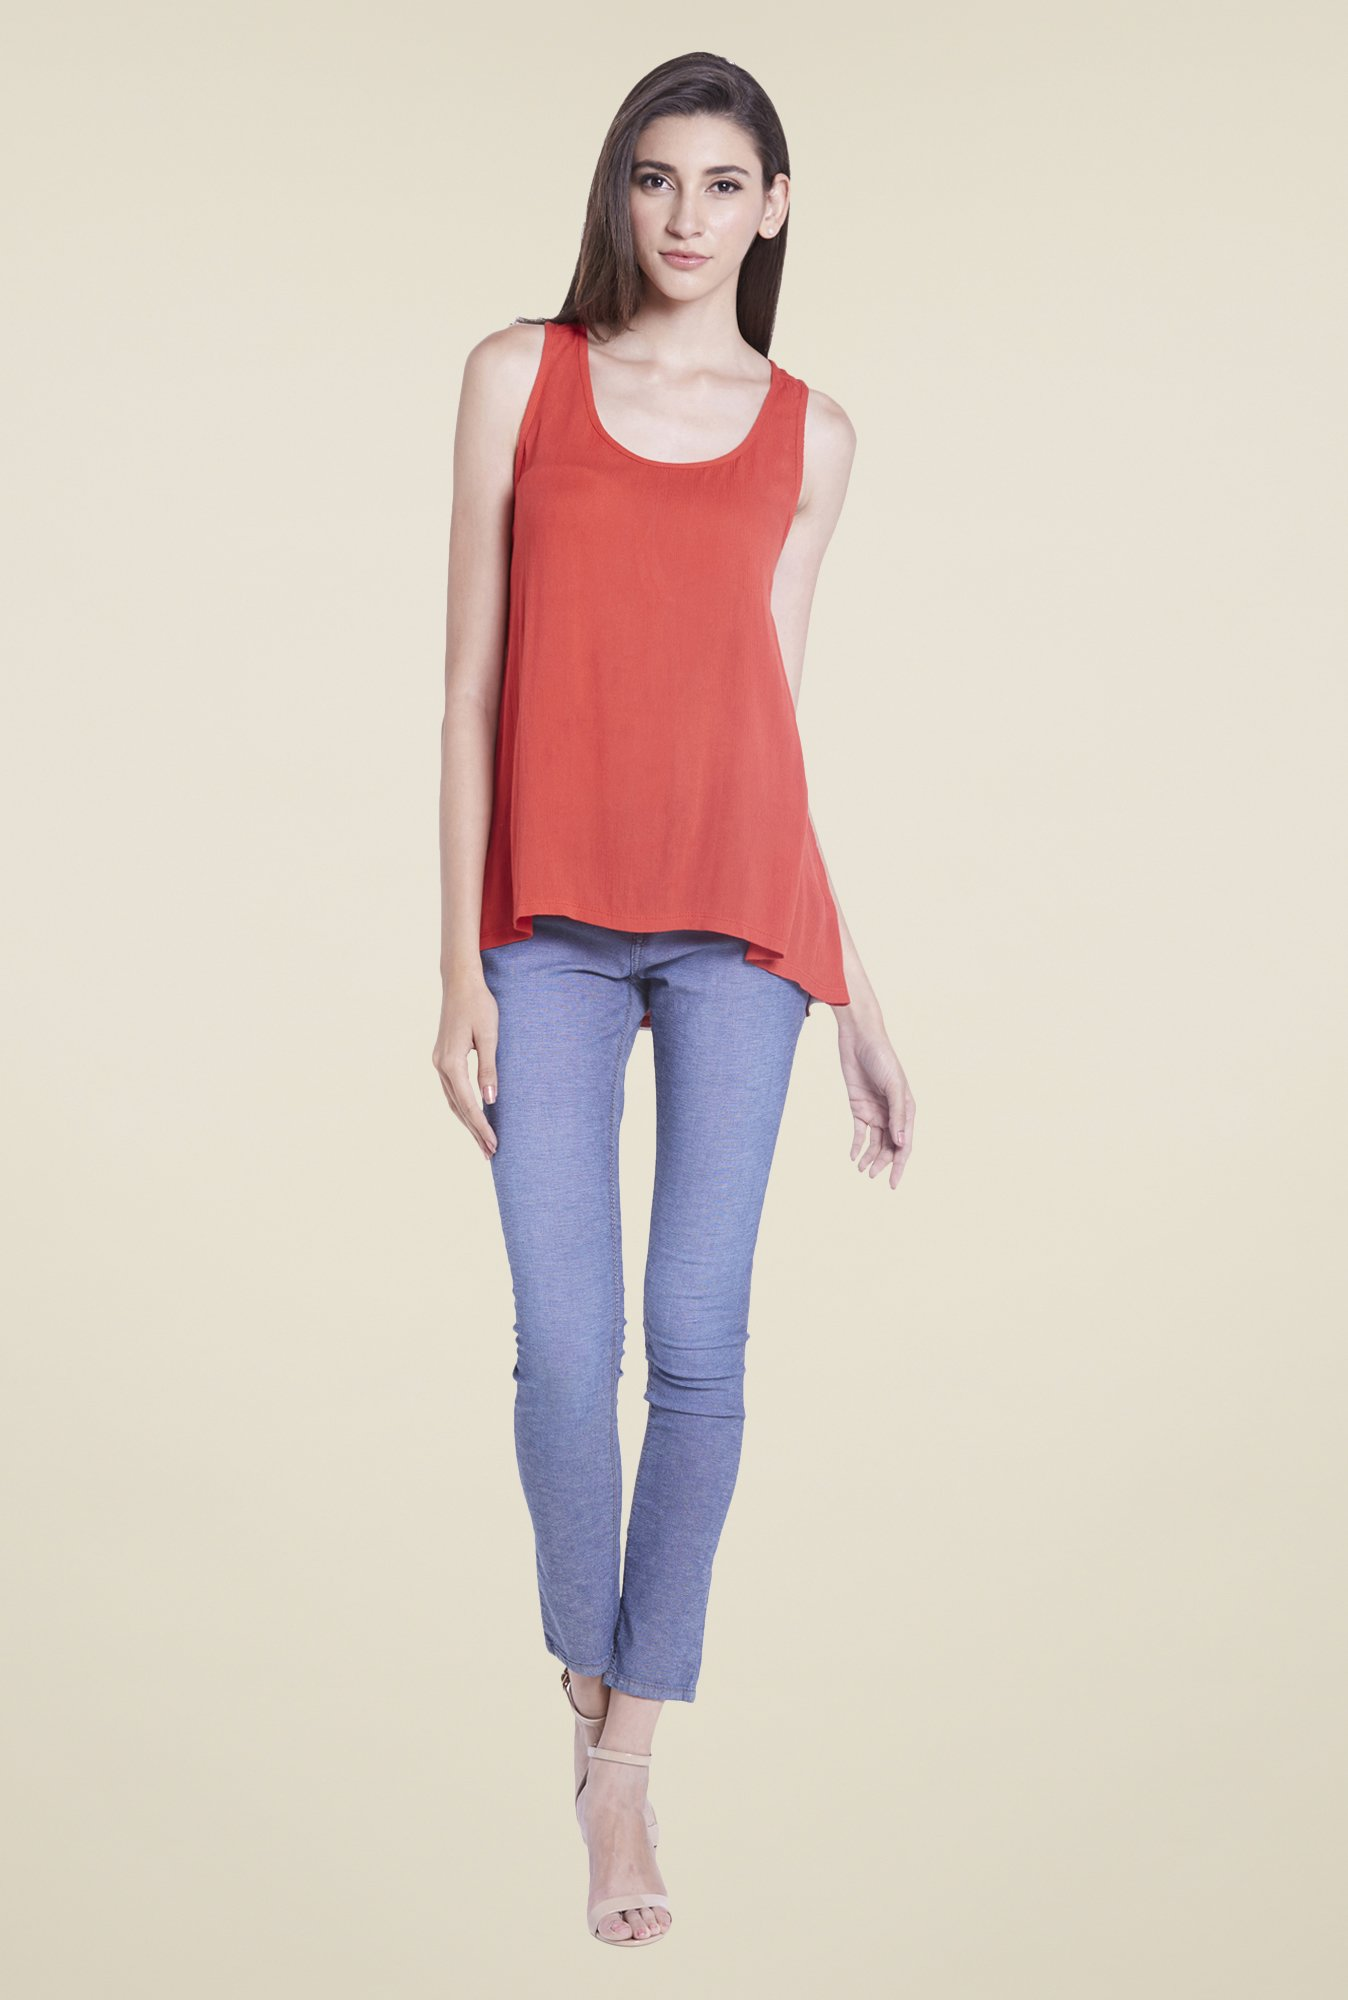 Globus Coral Solid U Neck Top